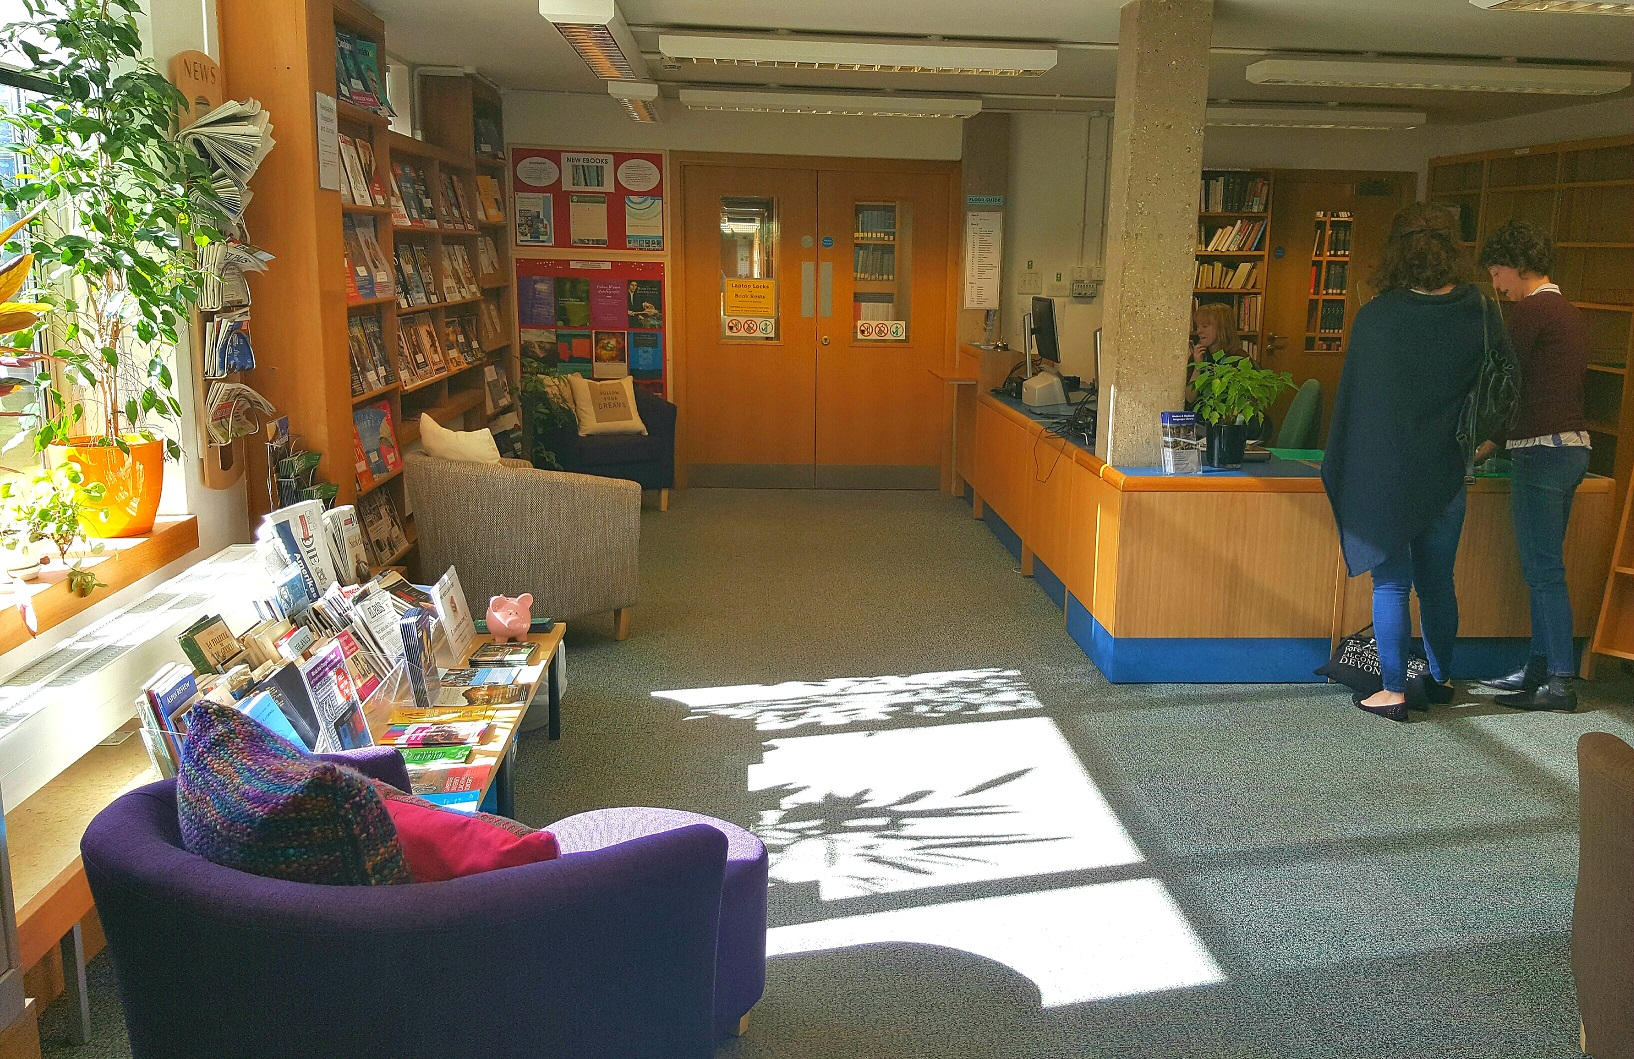 A colour photo of the MMLL Library lobby, with people standing next to the self-service machine